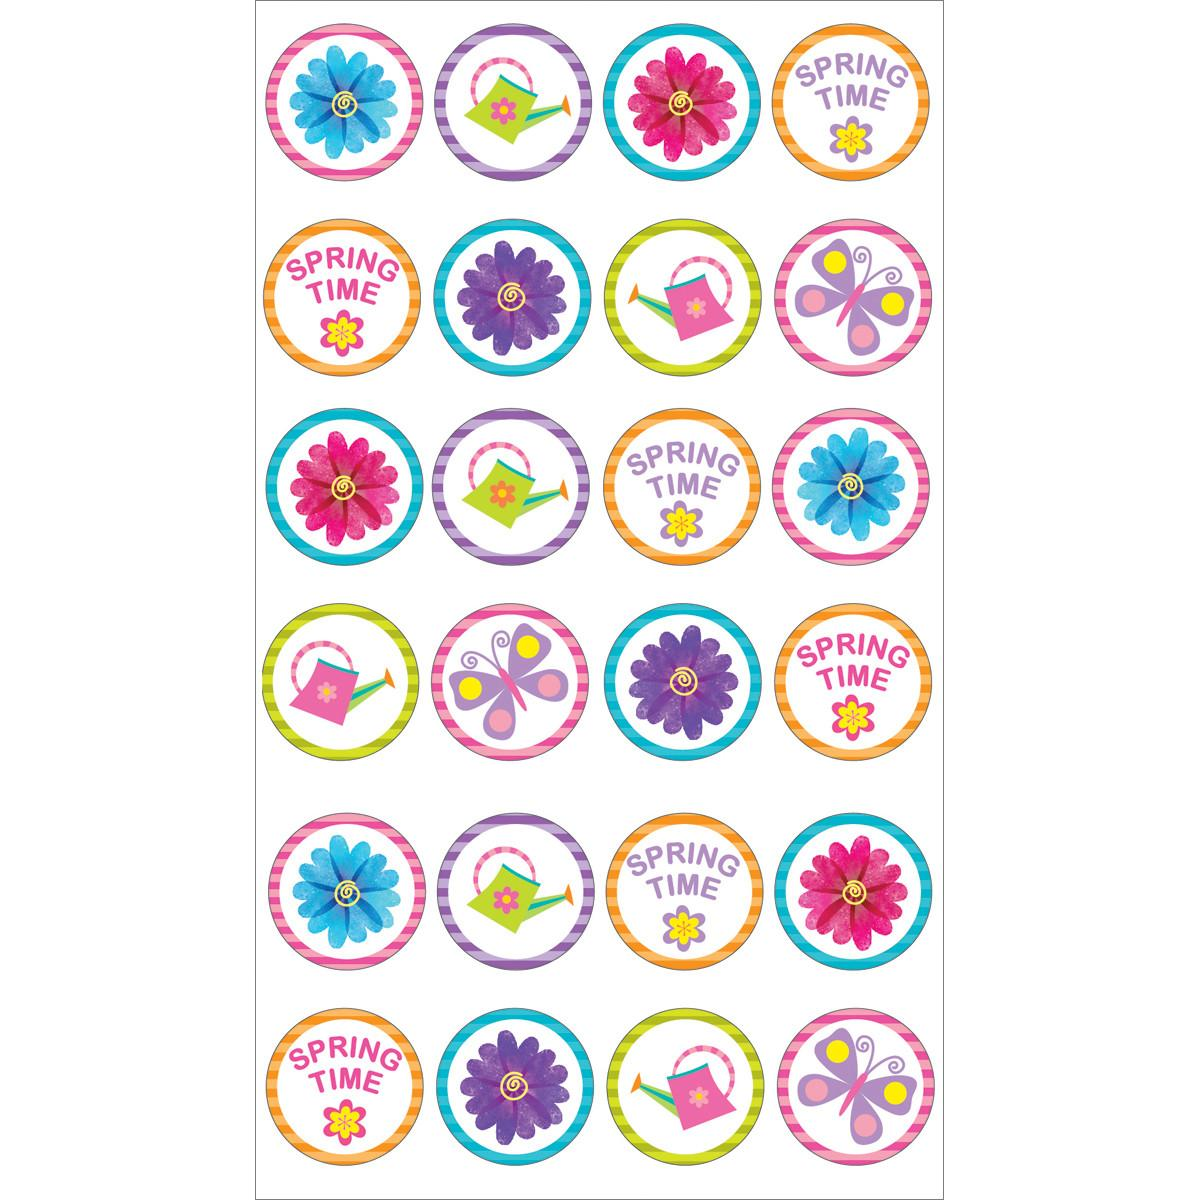 Sticko Seasonal Stickers Spring Time Repeat Ann